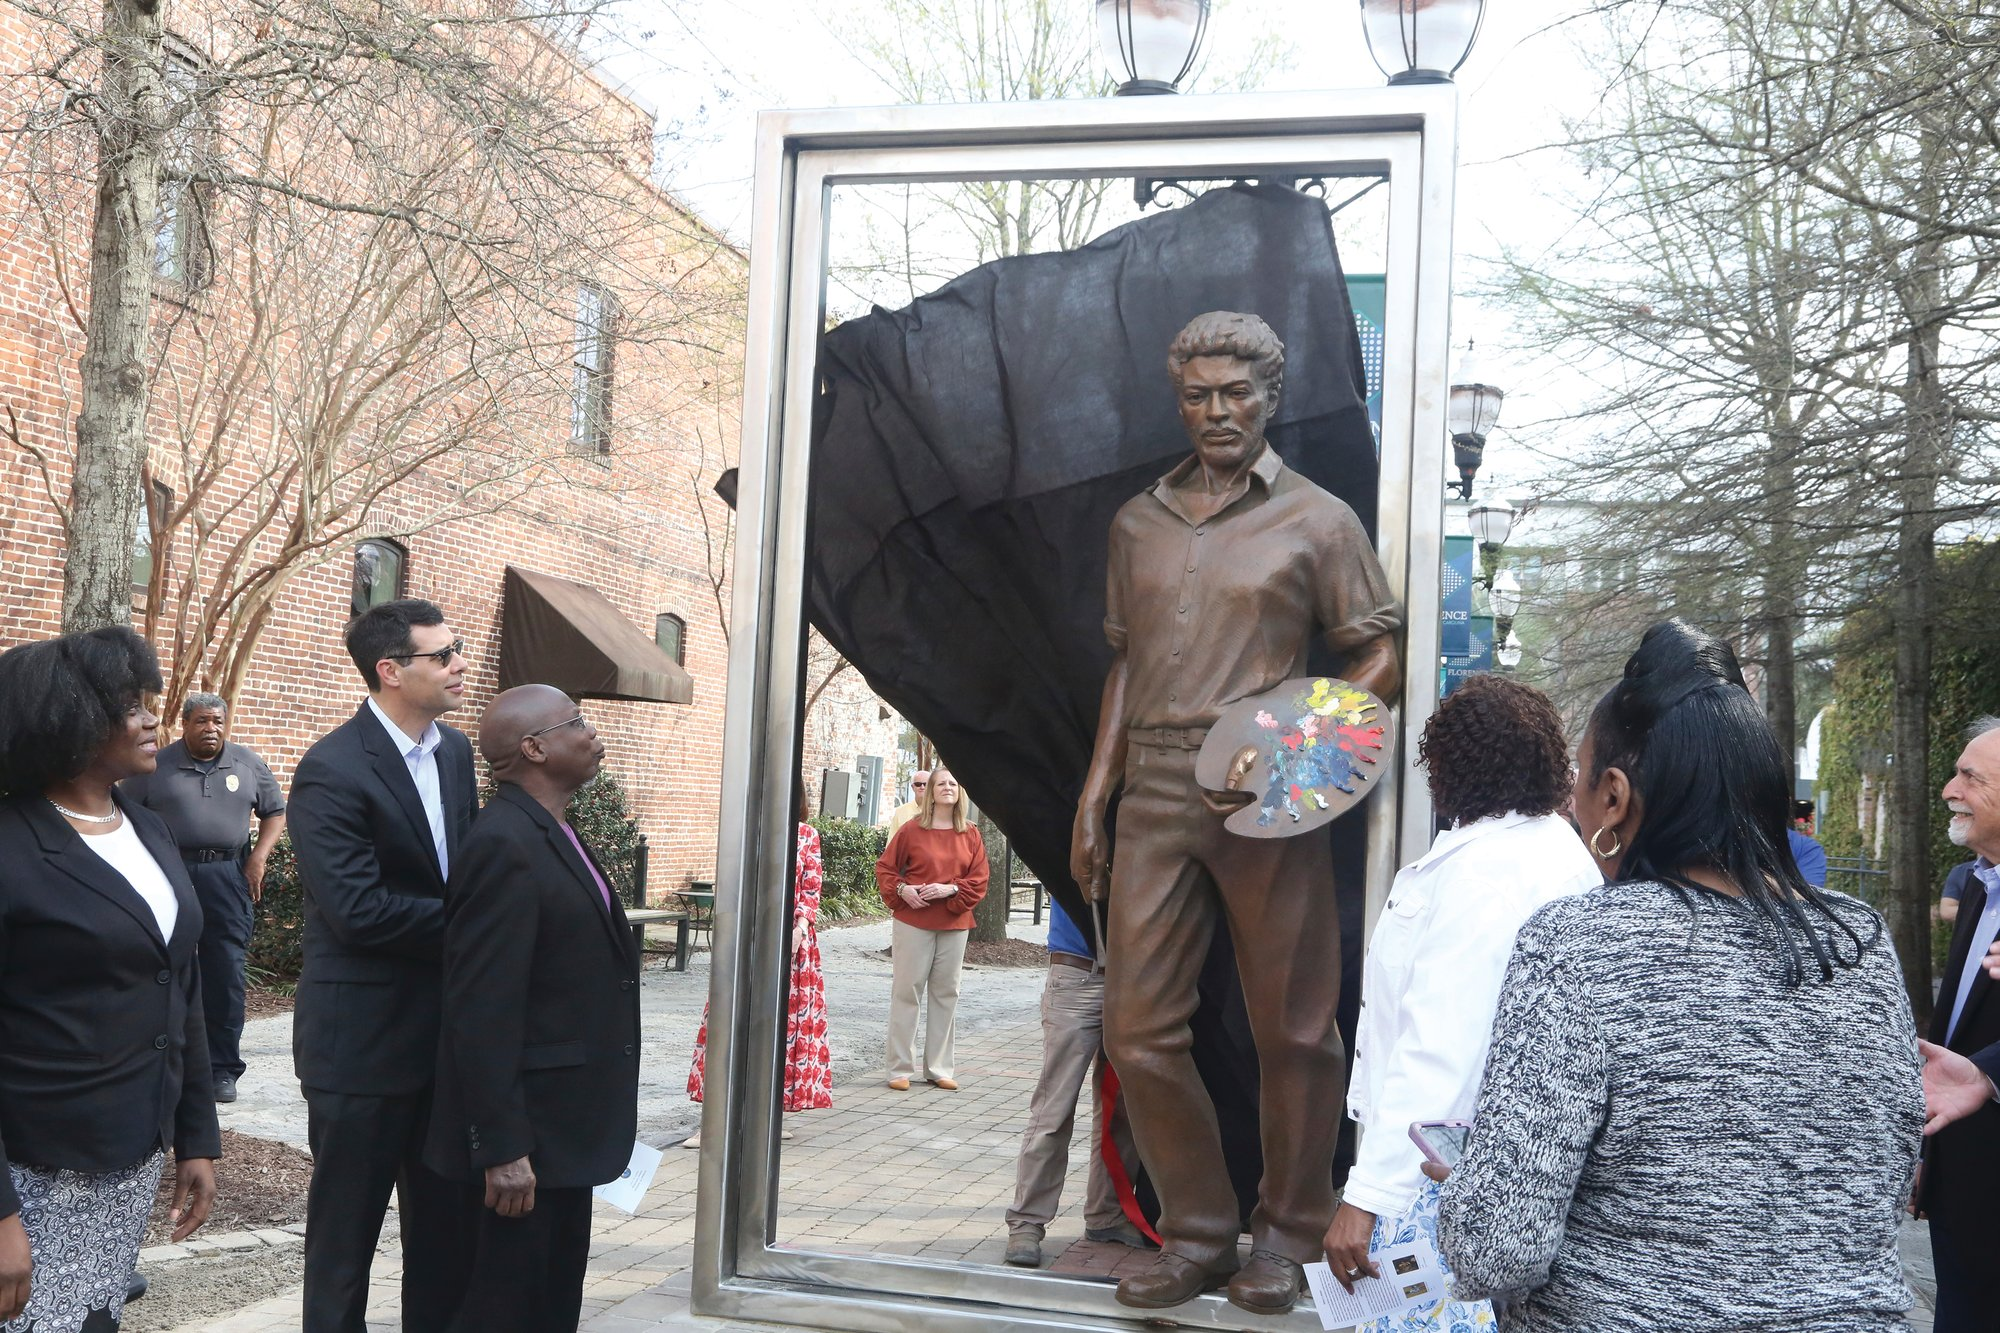 Matthew Christian / The Morning News via AP   The city of Florence unveils a statue of artist William H. Johnson in the West Evans Street Breezeway on March 18.